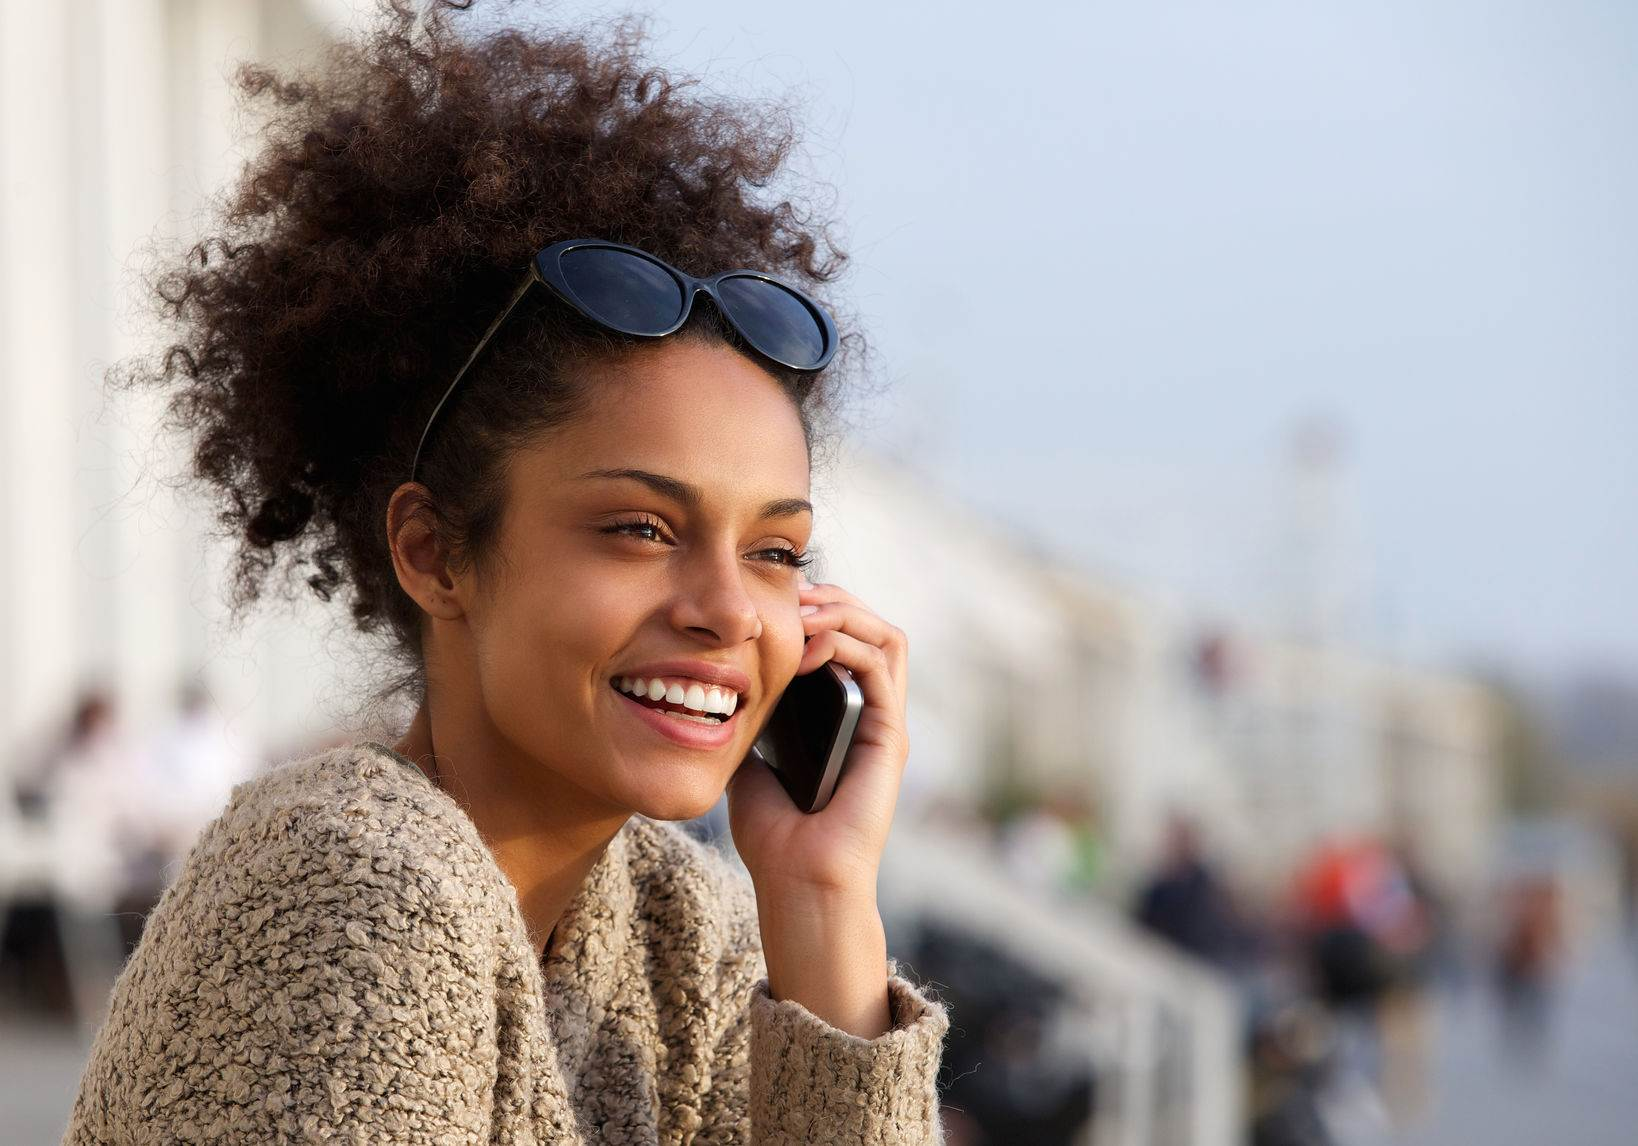 40345571 - close up portrait of an attractive young woman smiling and talking on mobile phone